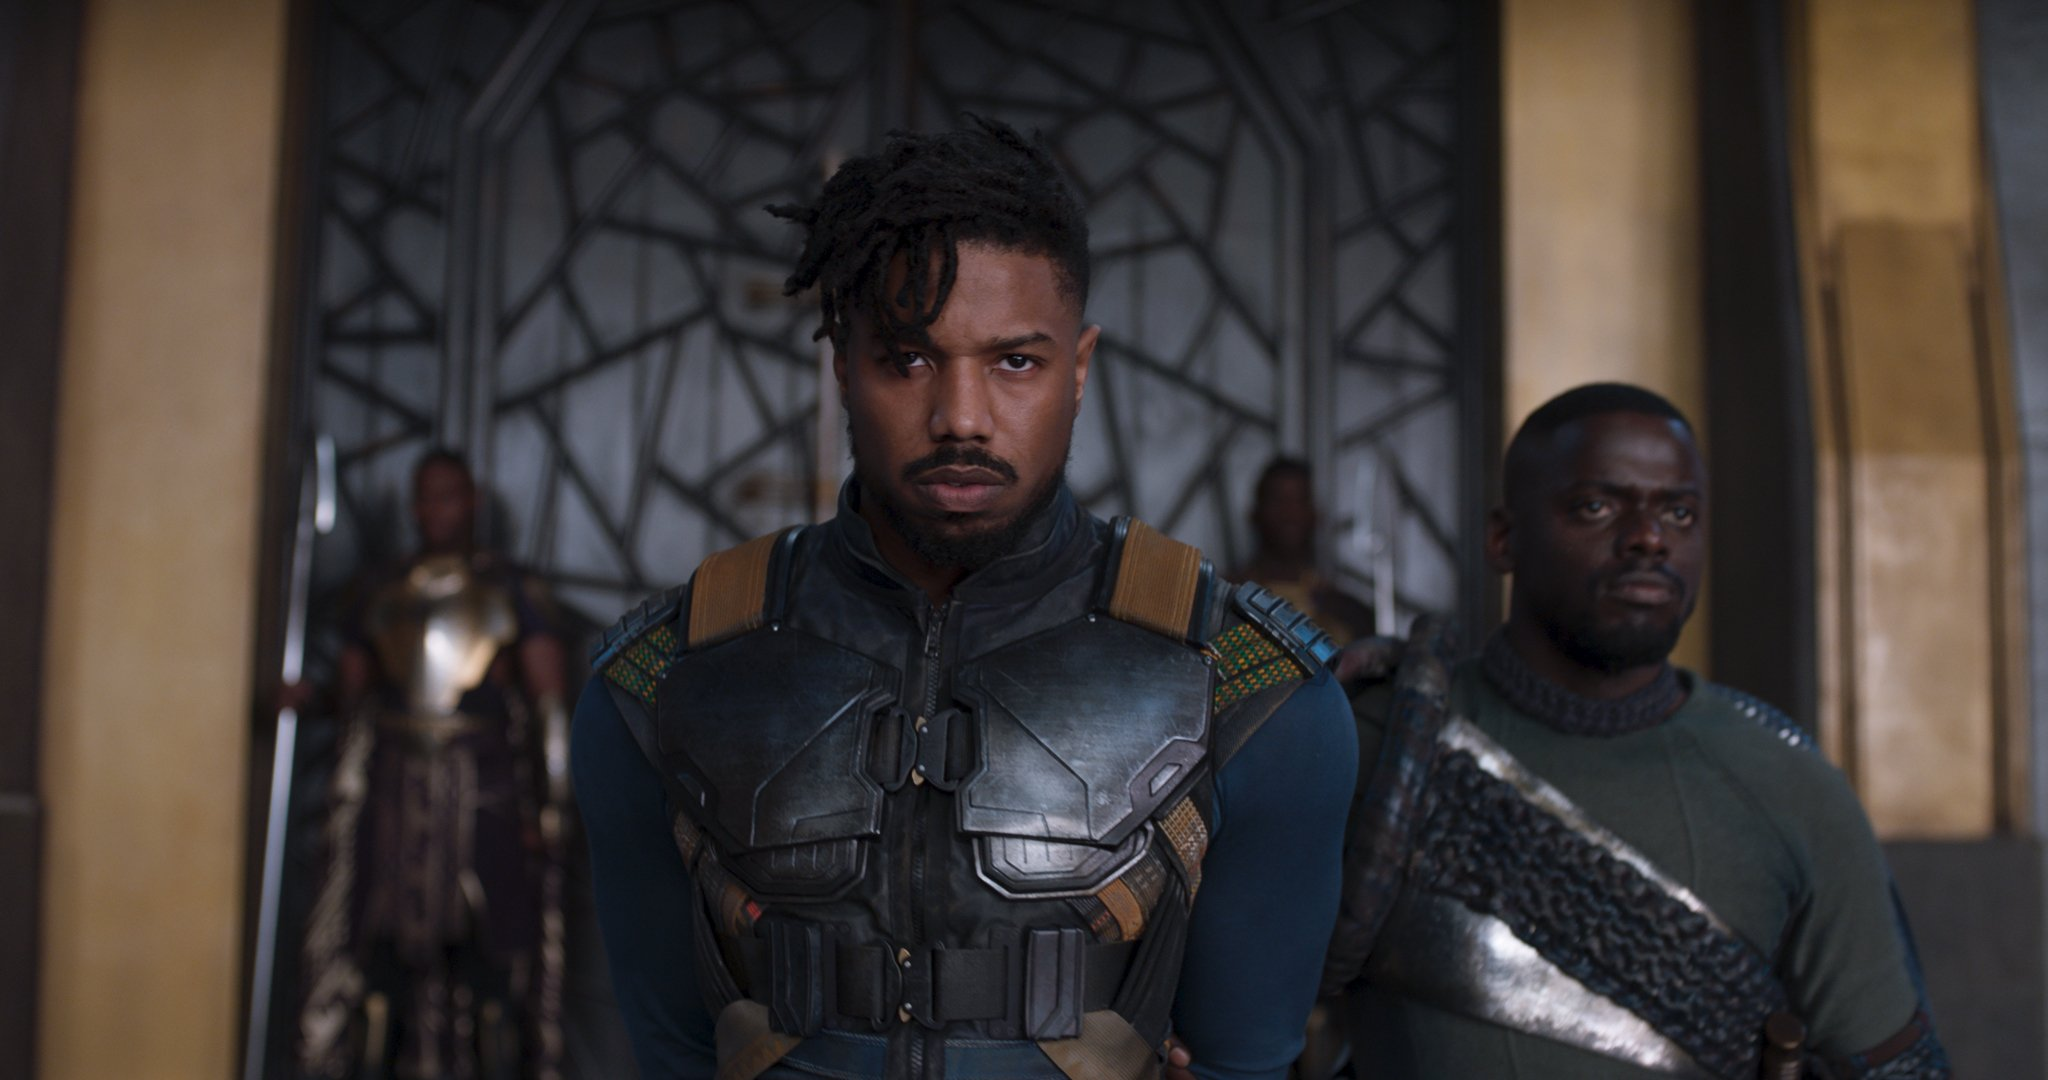 Photo du film Black Panther réalisé par Ryan Coogler avec Killmonger (Michael B. Jordan) en costume